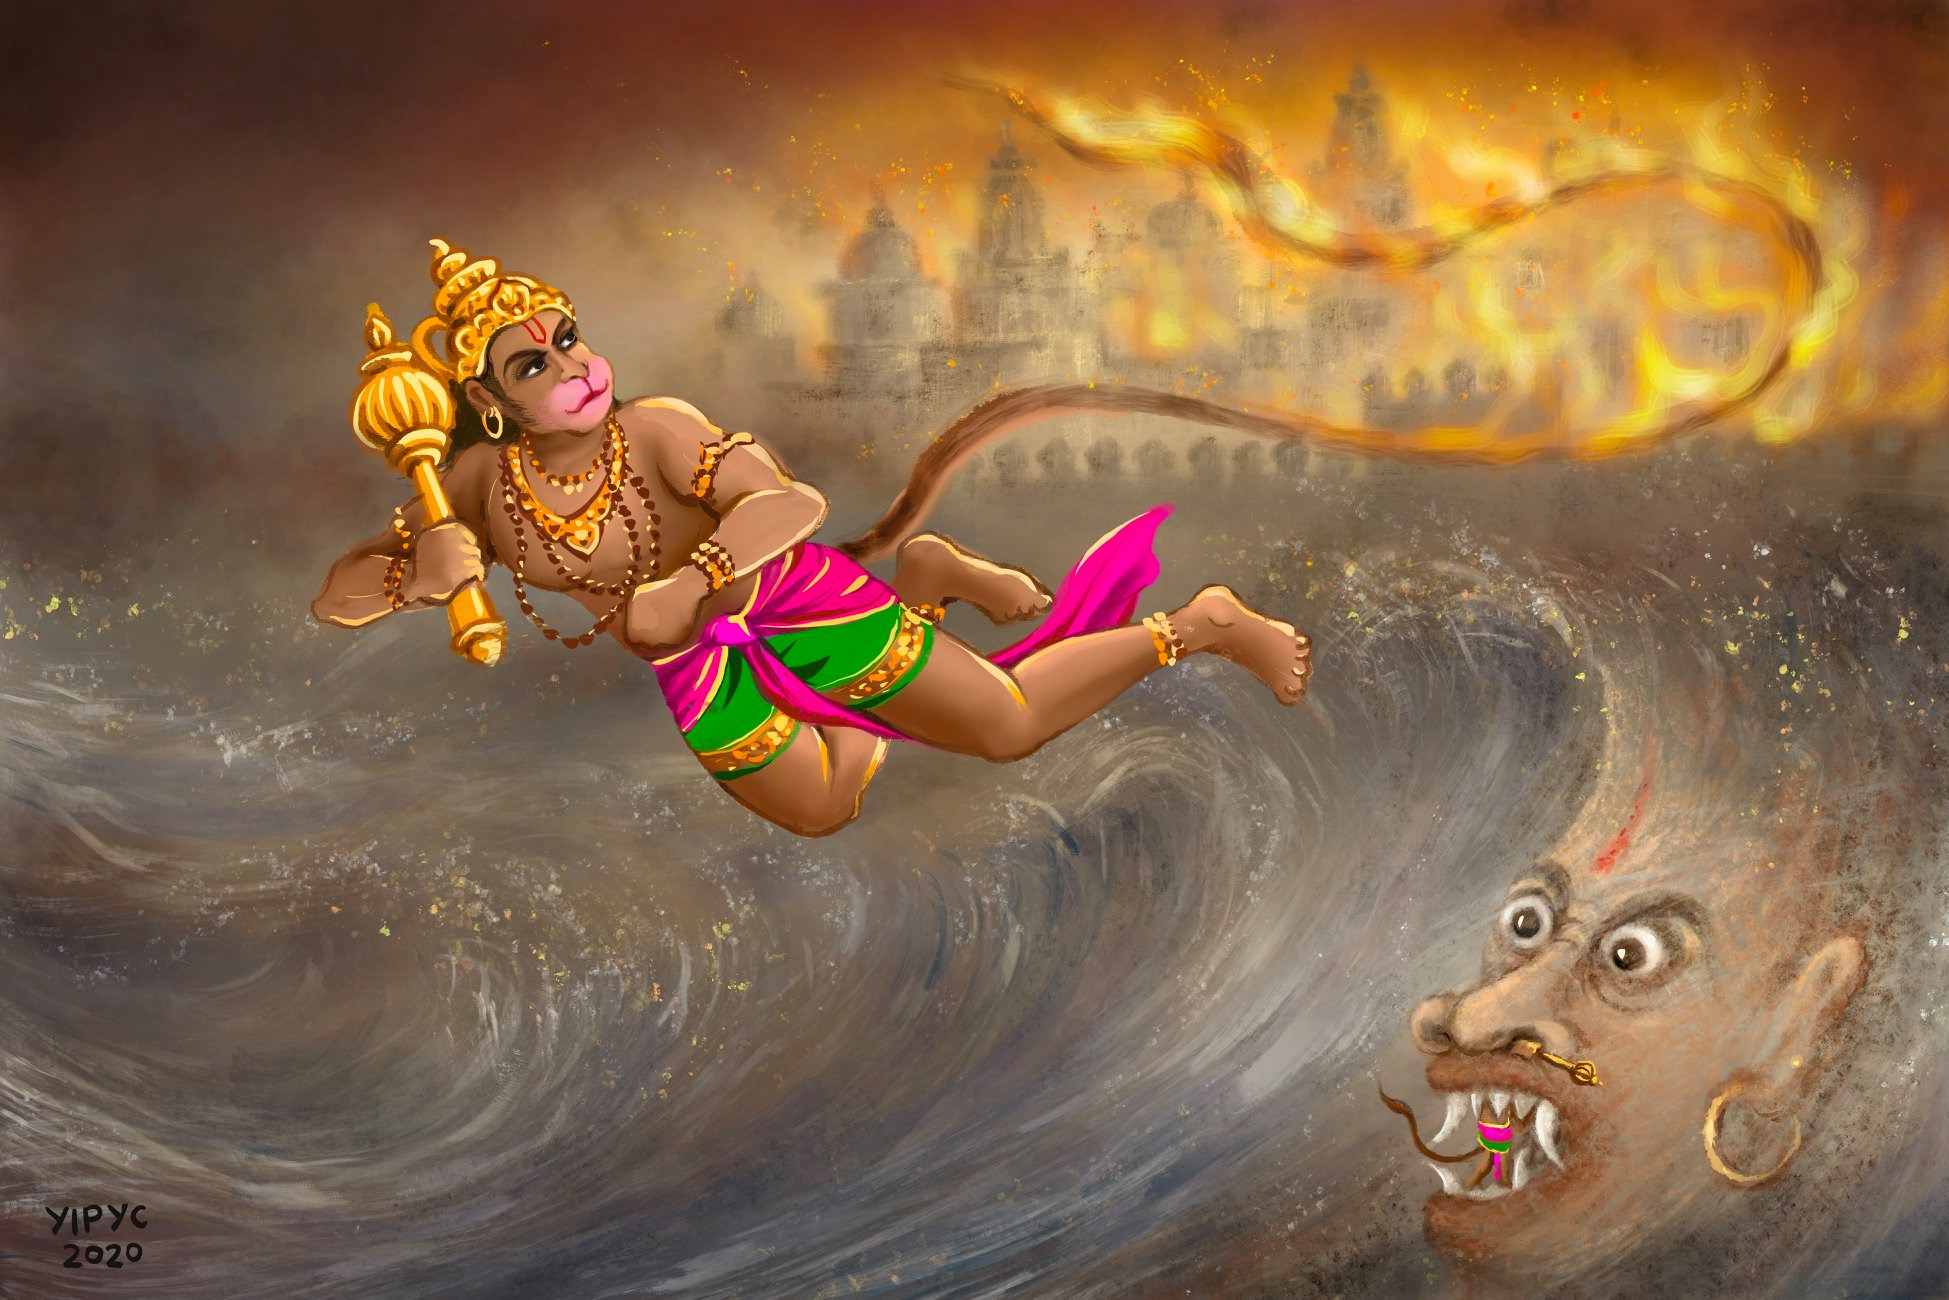 Yip Yew Chong's first-ever digital illustrations for an e-book feature stories from the Ramayana. Photo Courtesy: IHC